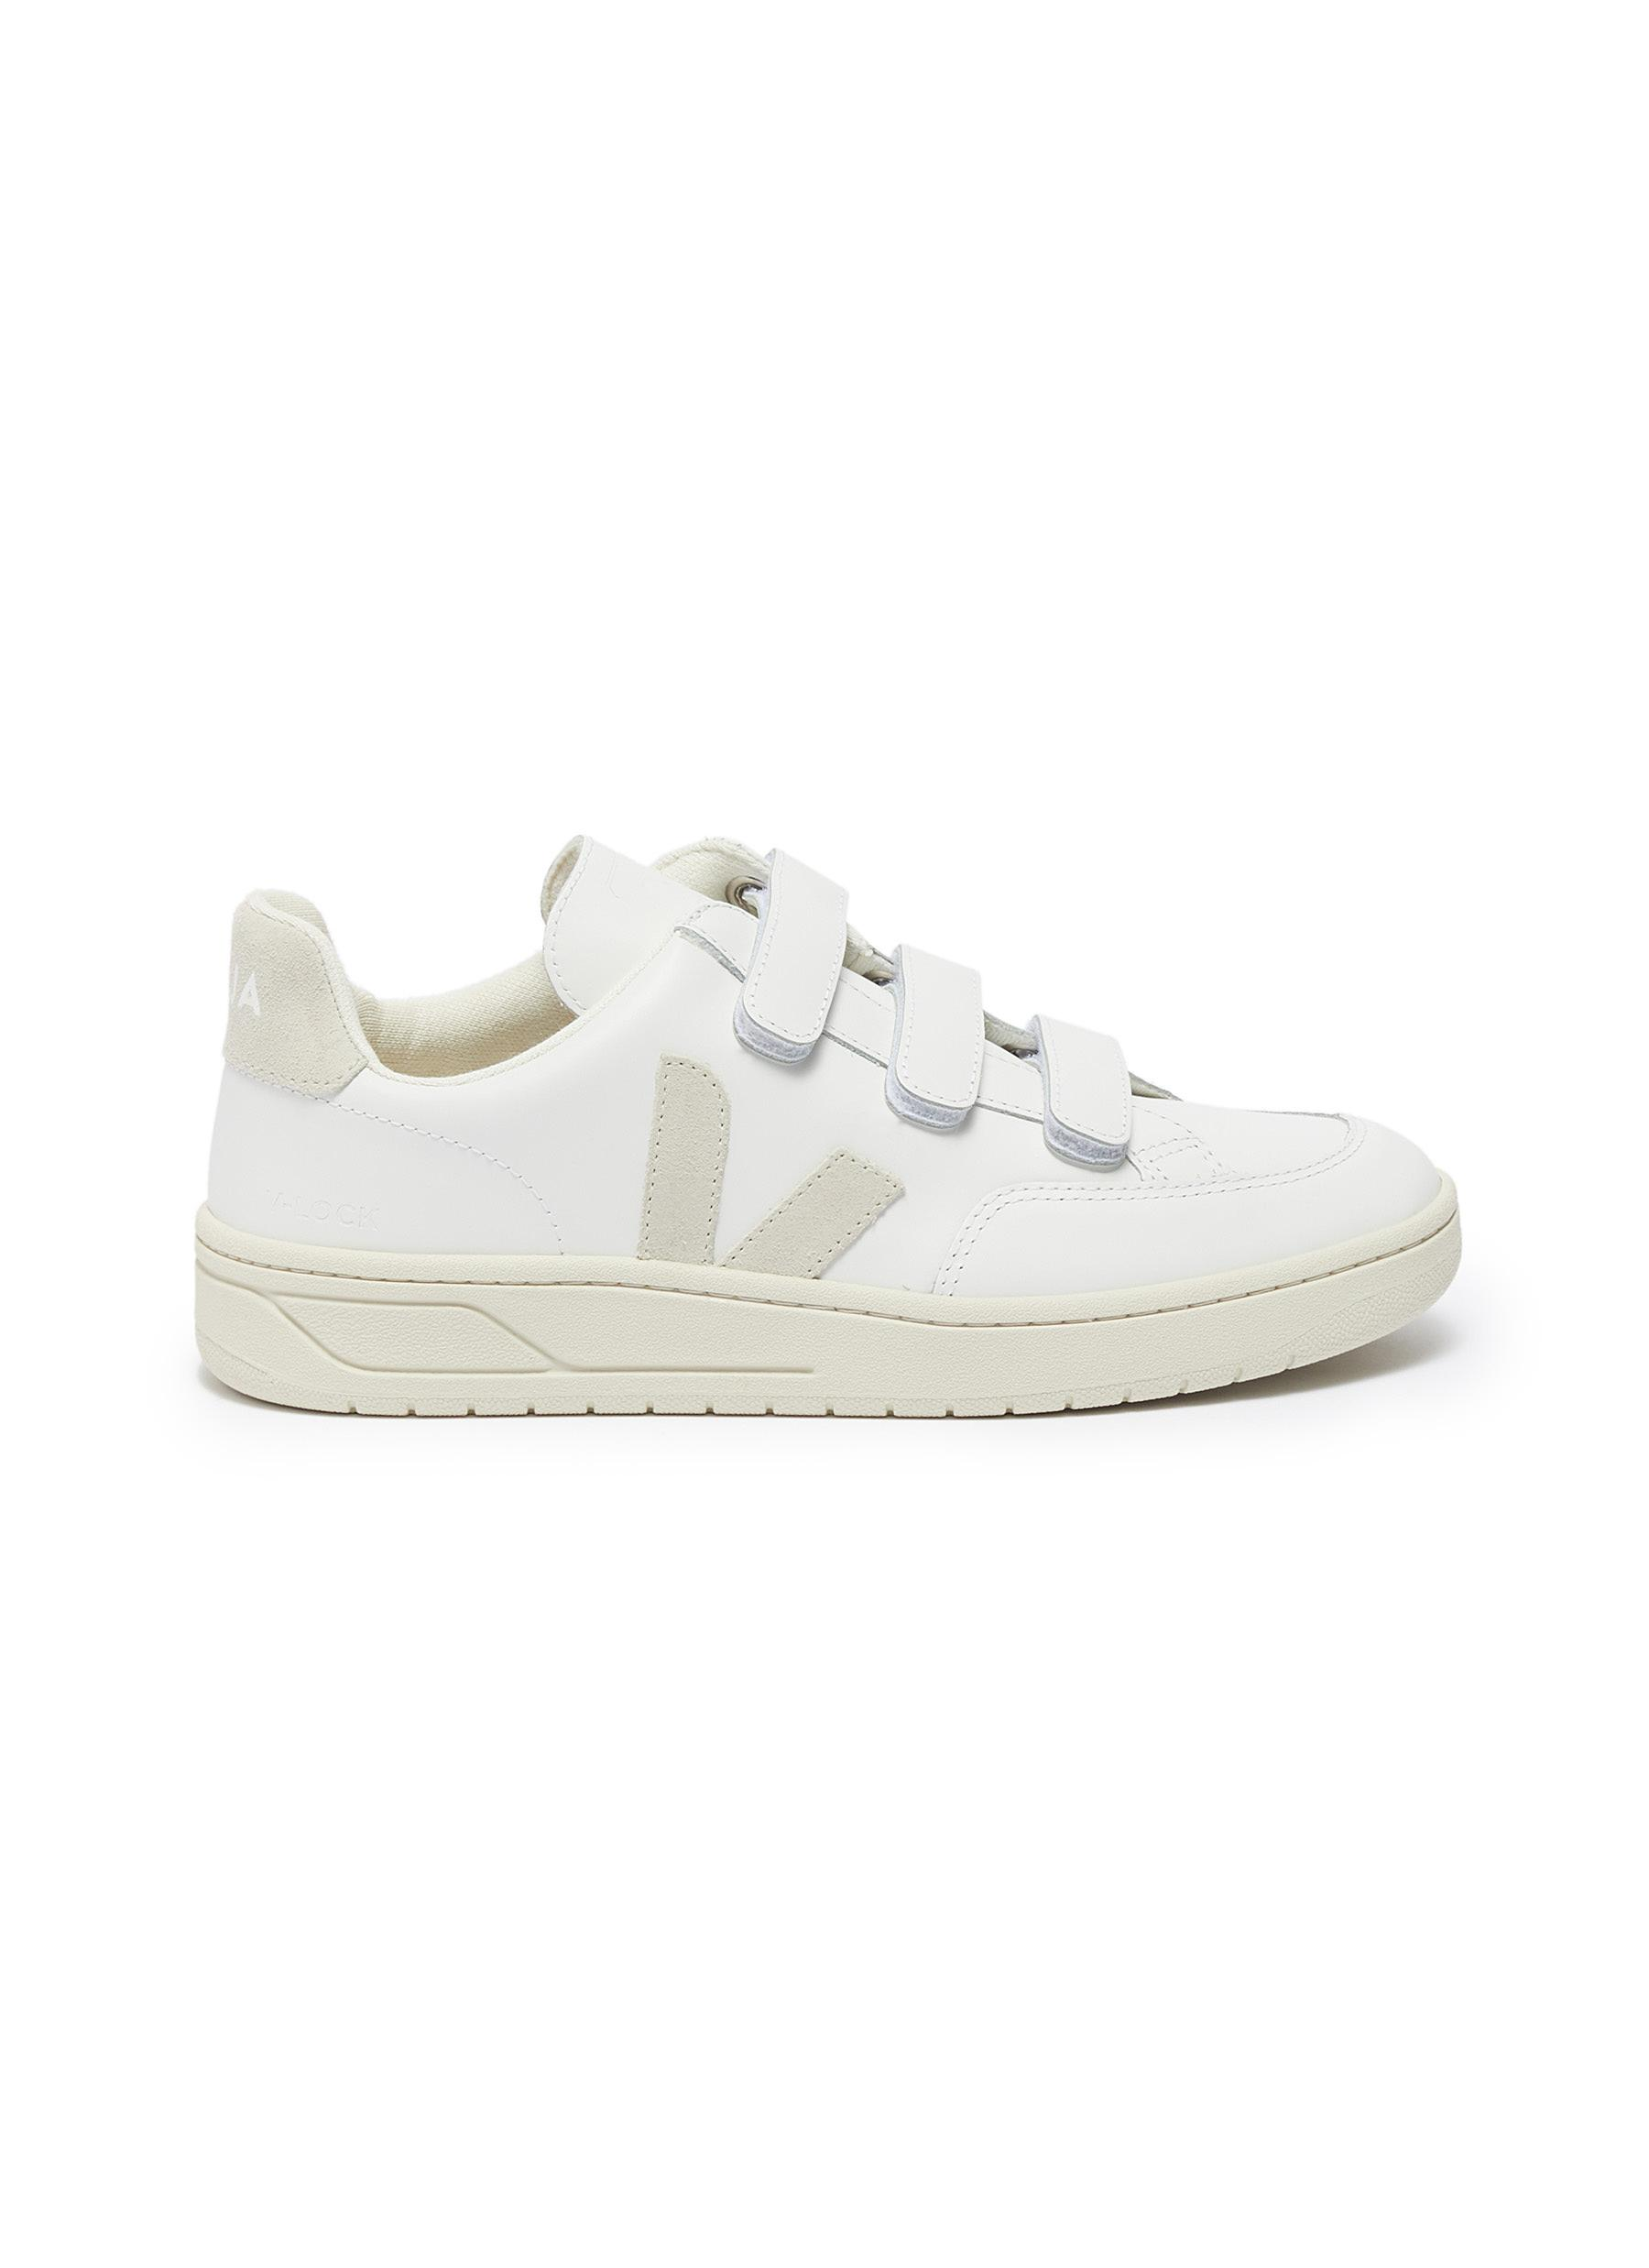 V-Lock leather sneakers by Veja